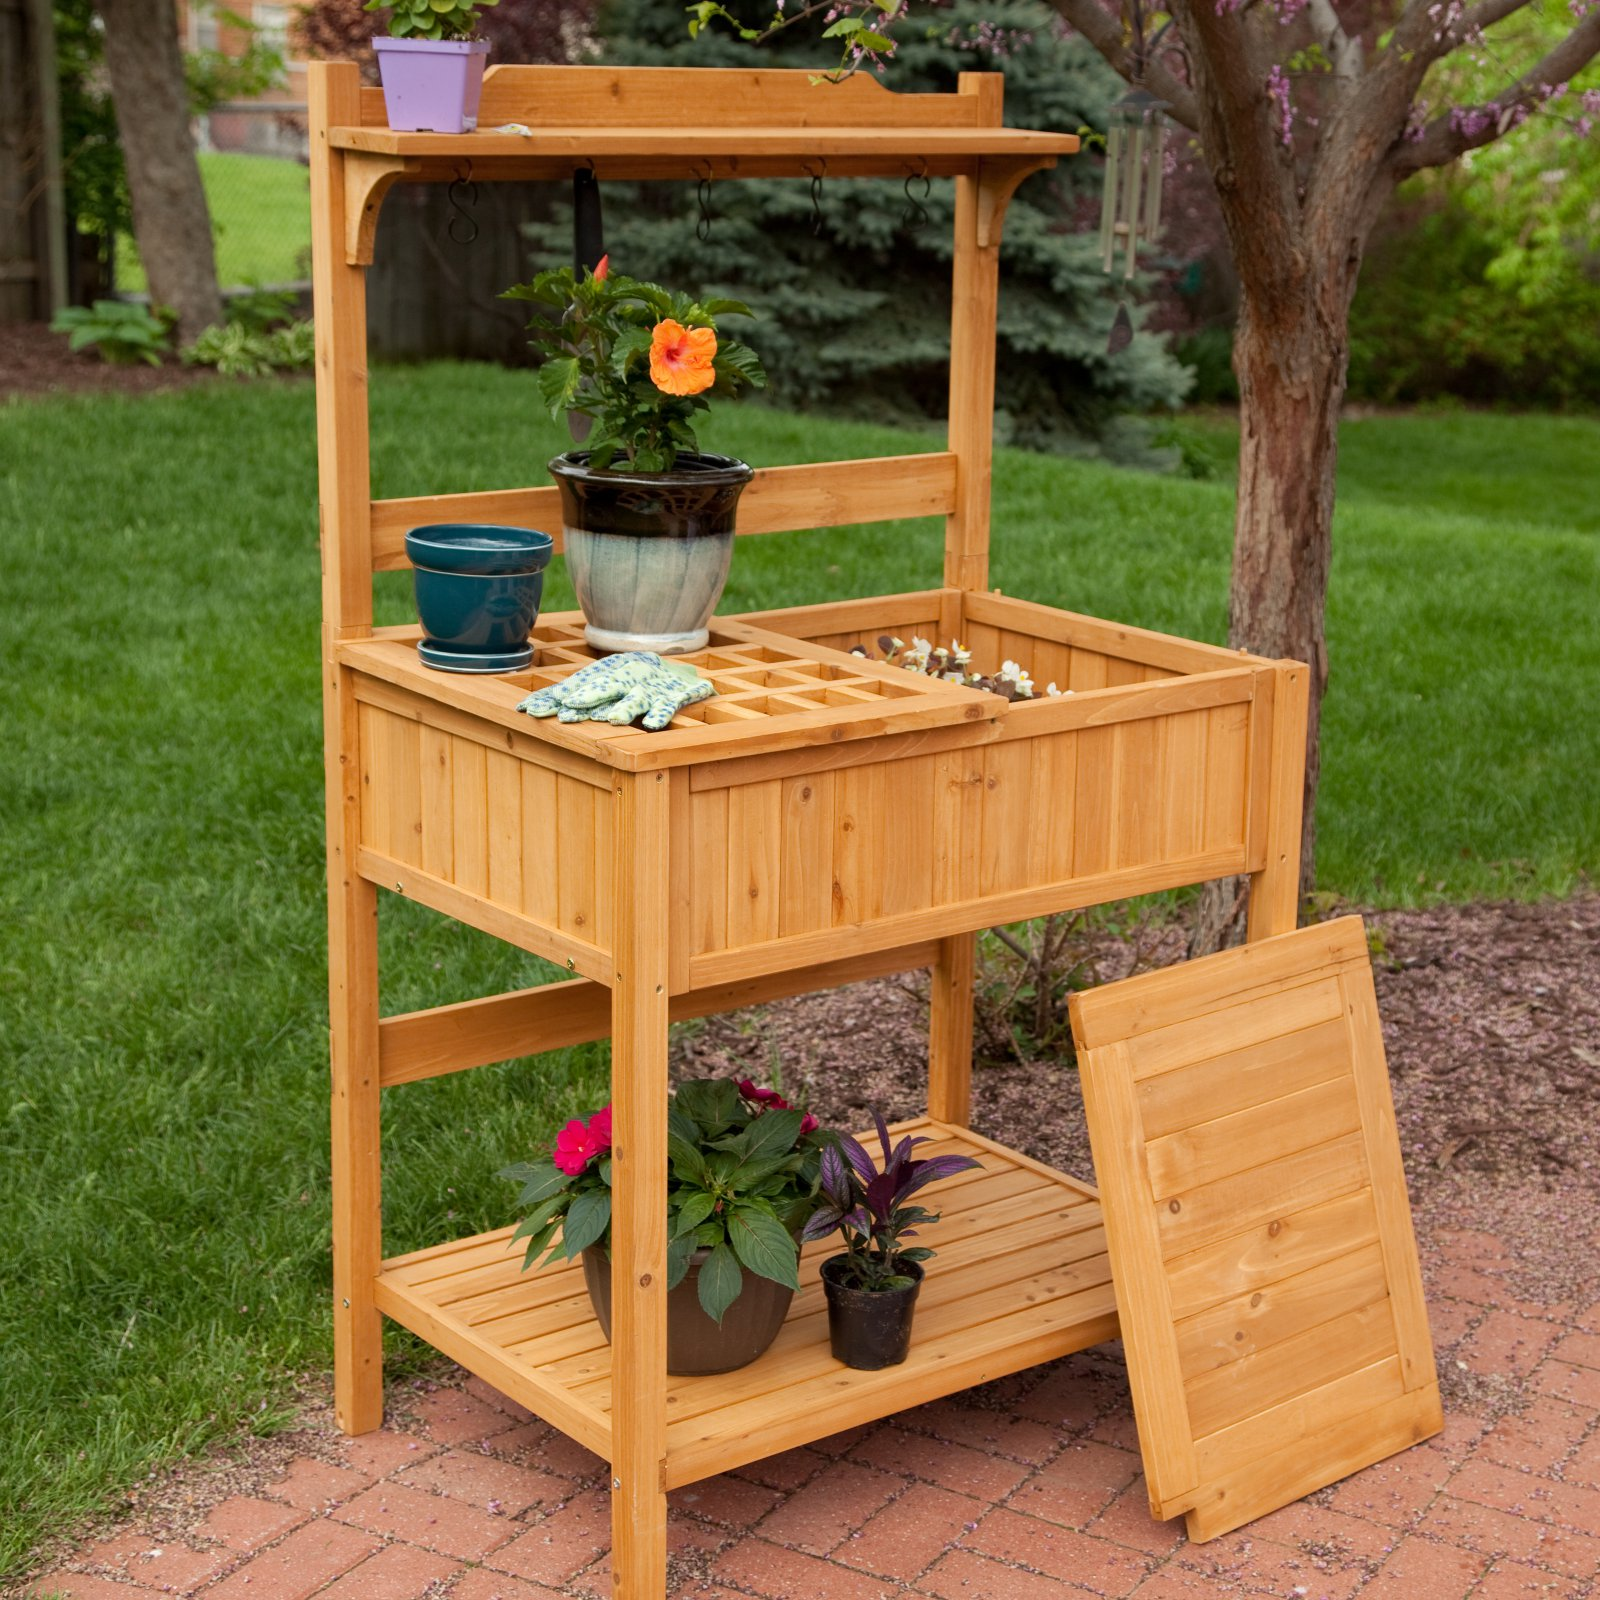 Coral Coast Gardener's Choice Fir Wood Potting Bench